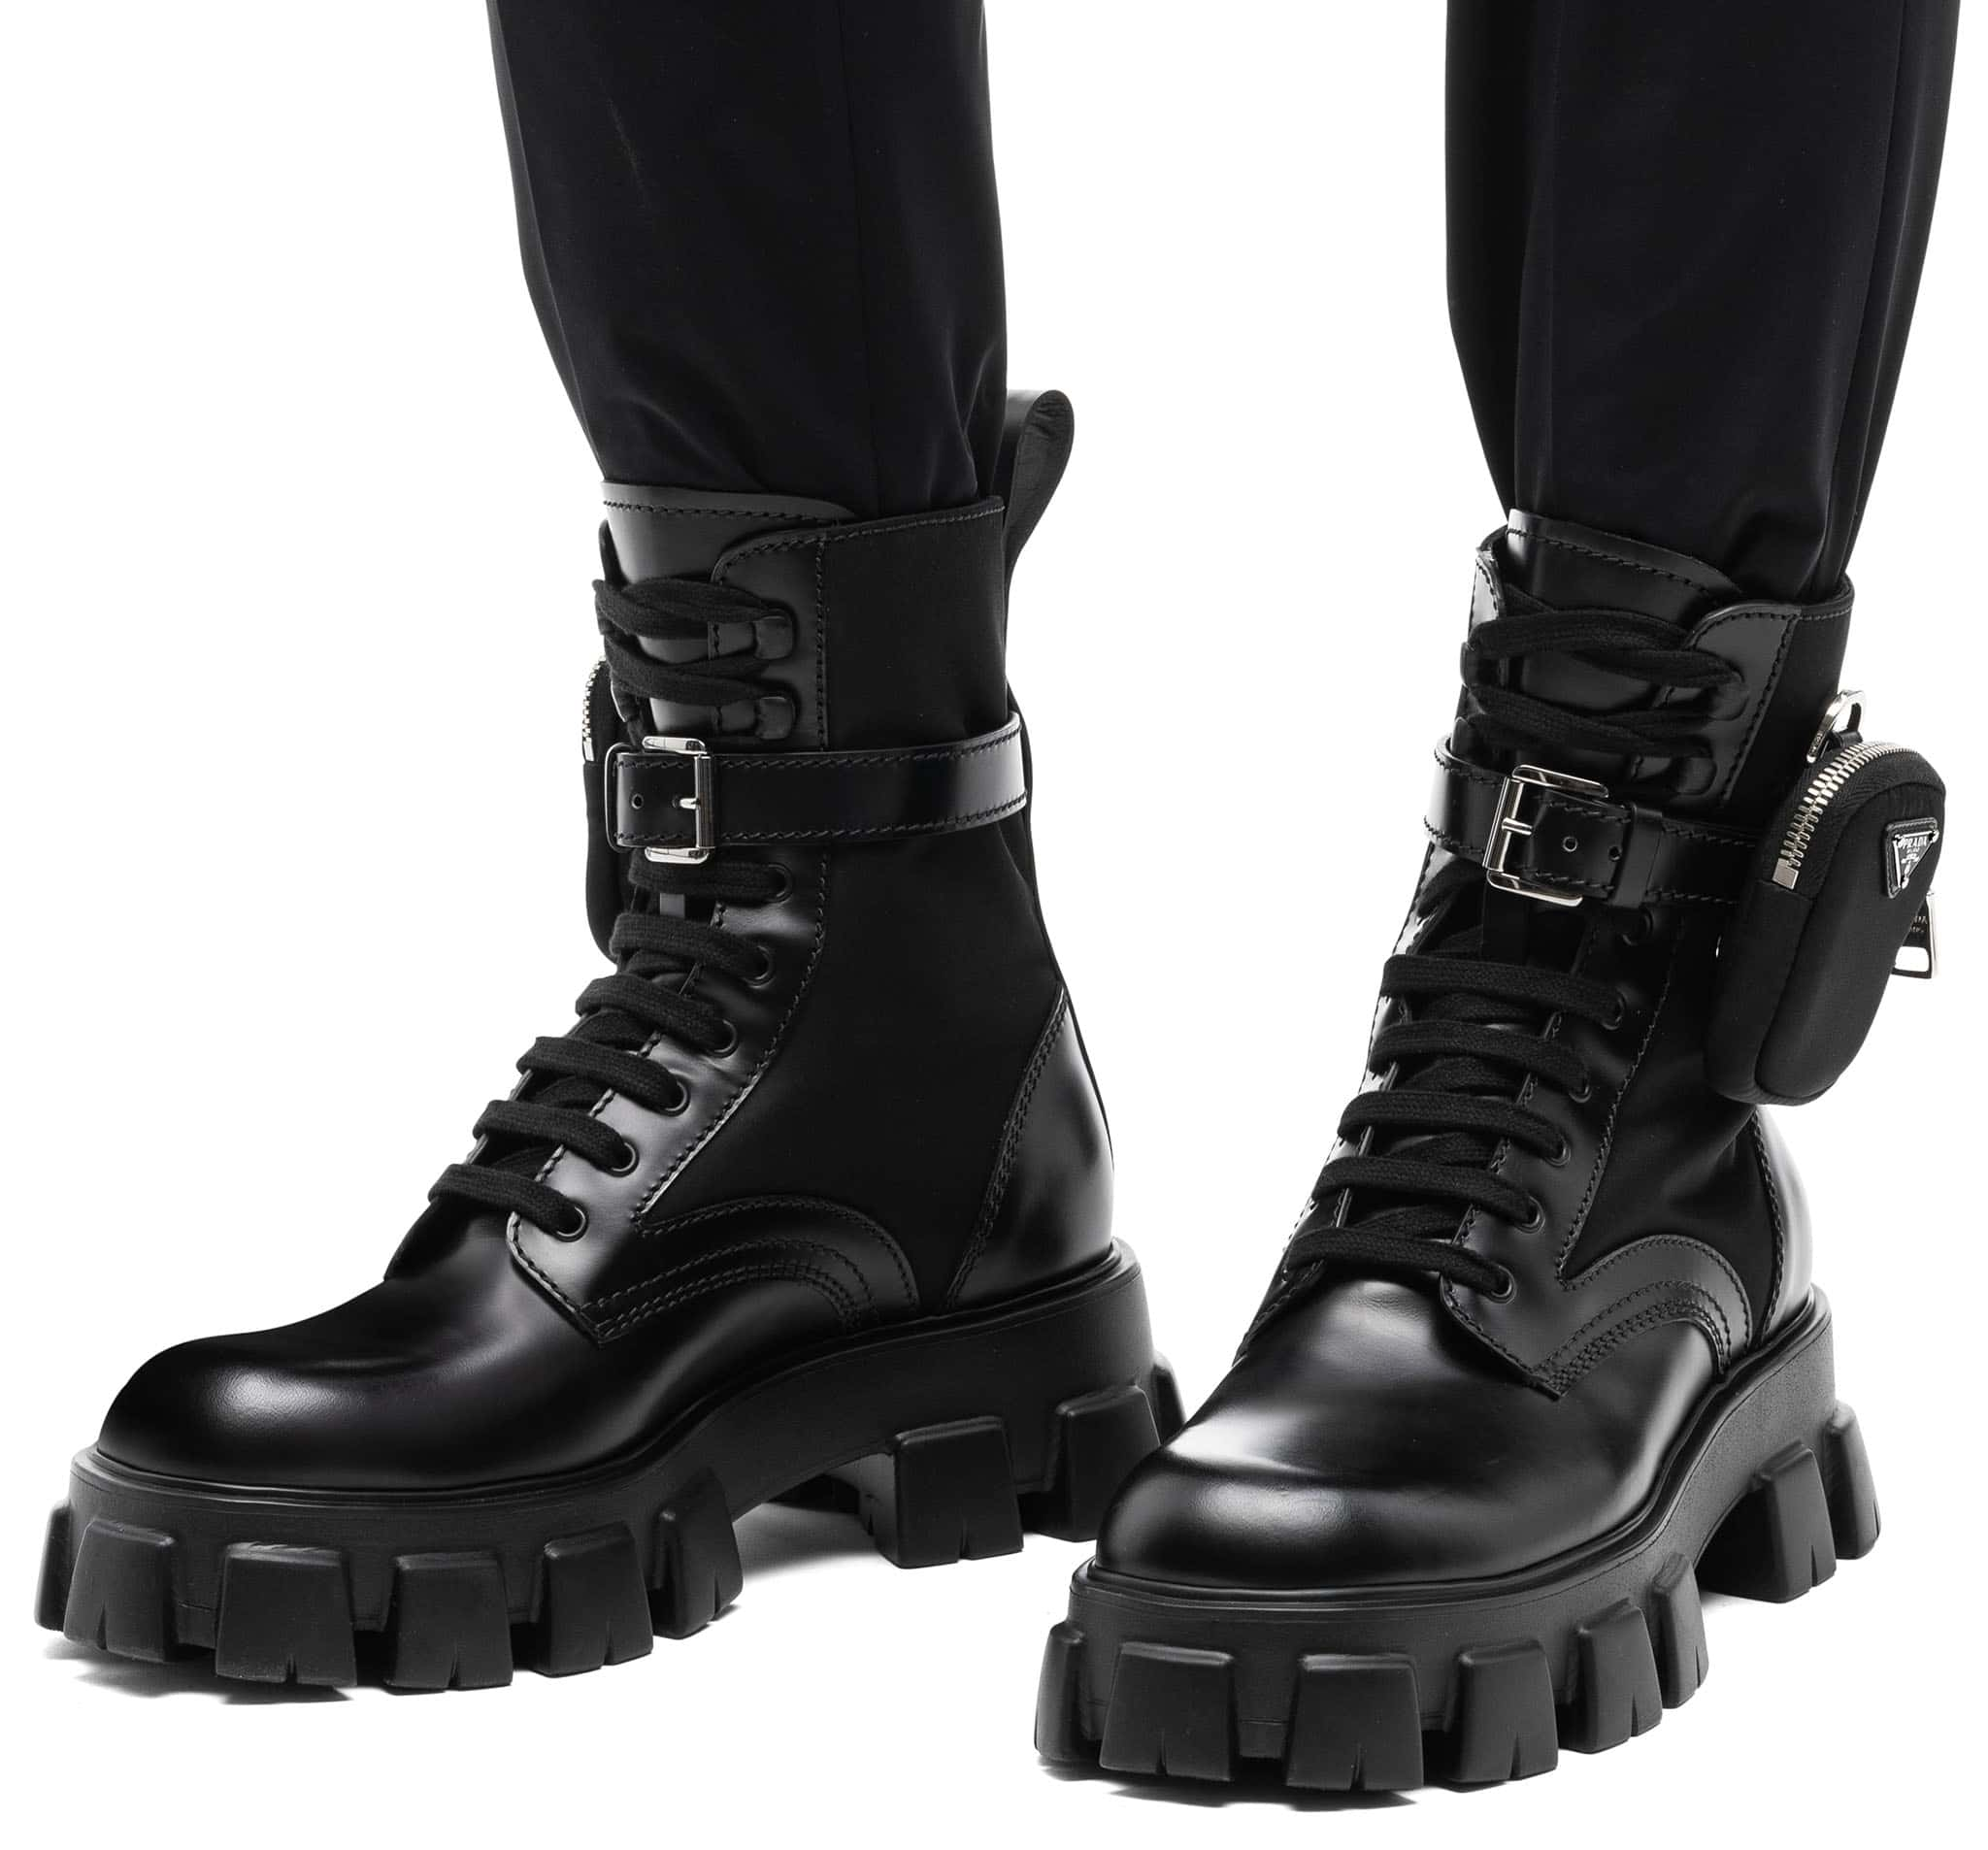 The Prada brushed leather and technical fabric boots are characterized by the removable pouch and have oversized light rubber sawtooth soles